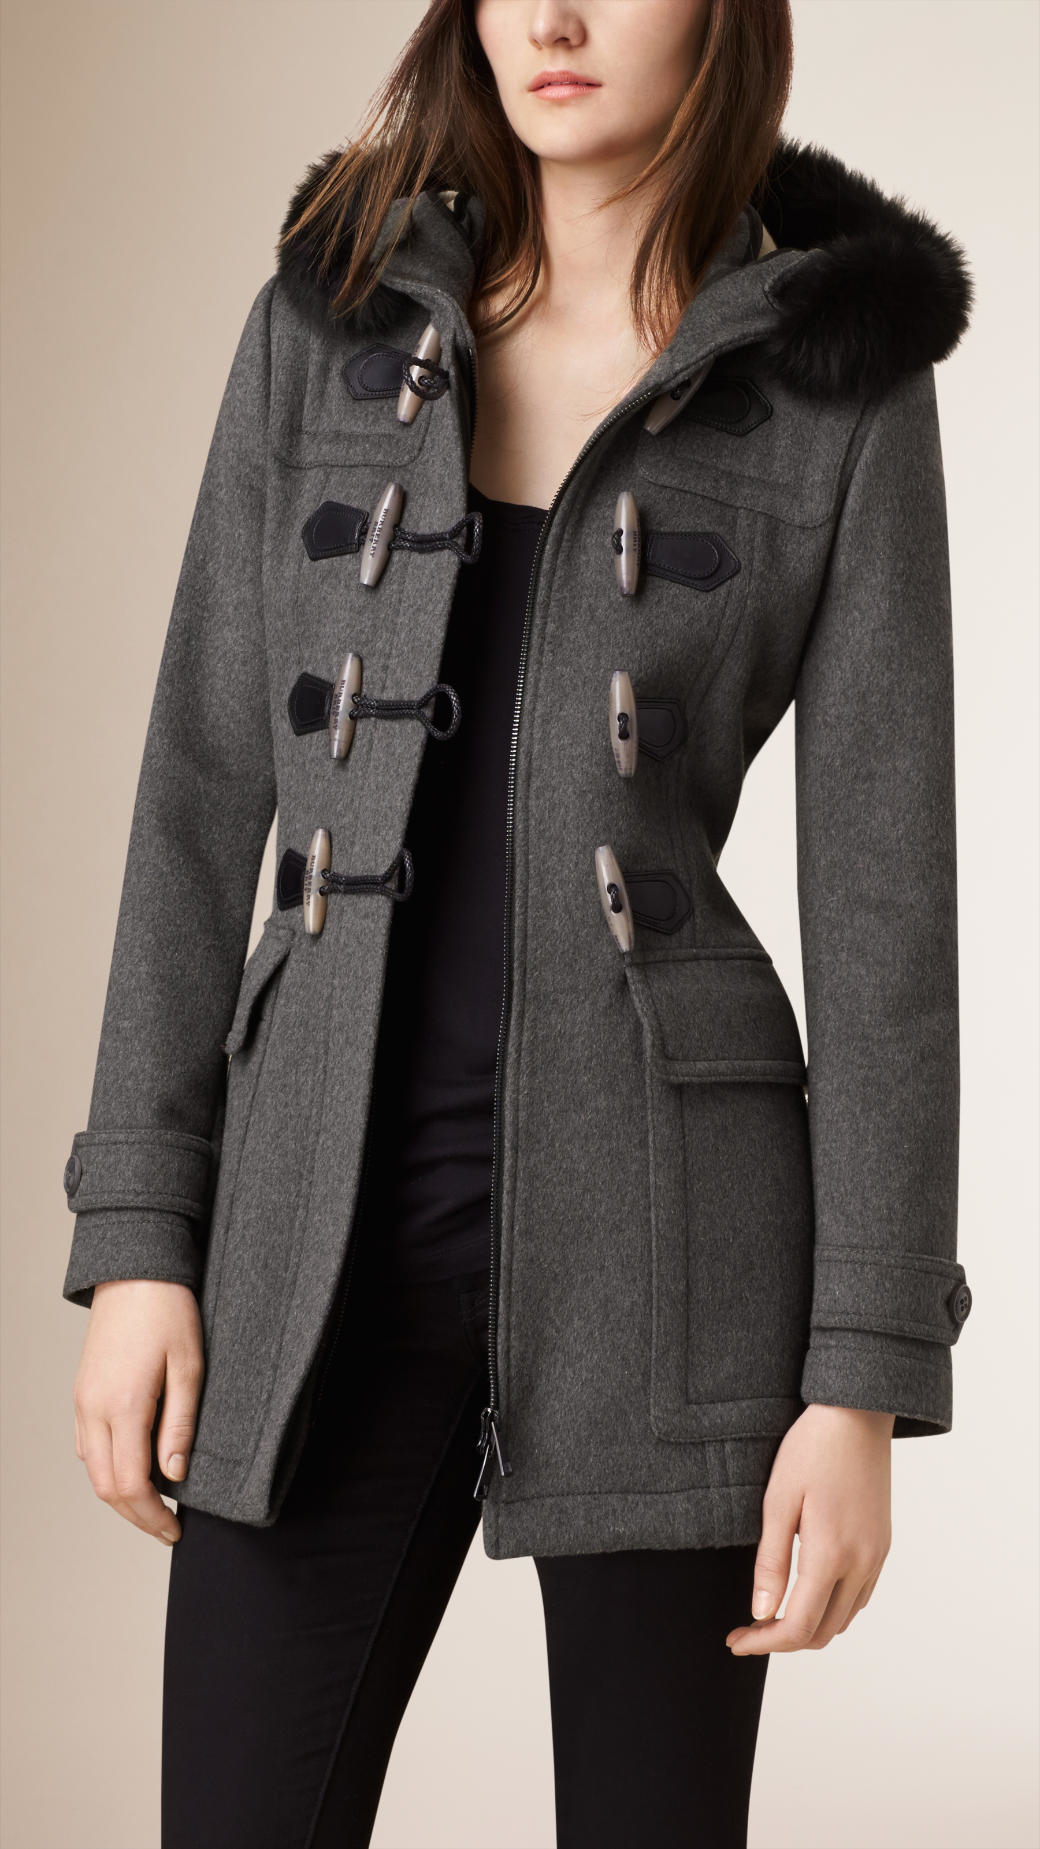 Womens grey duffle coat – Modern fashion jacket photo blog